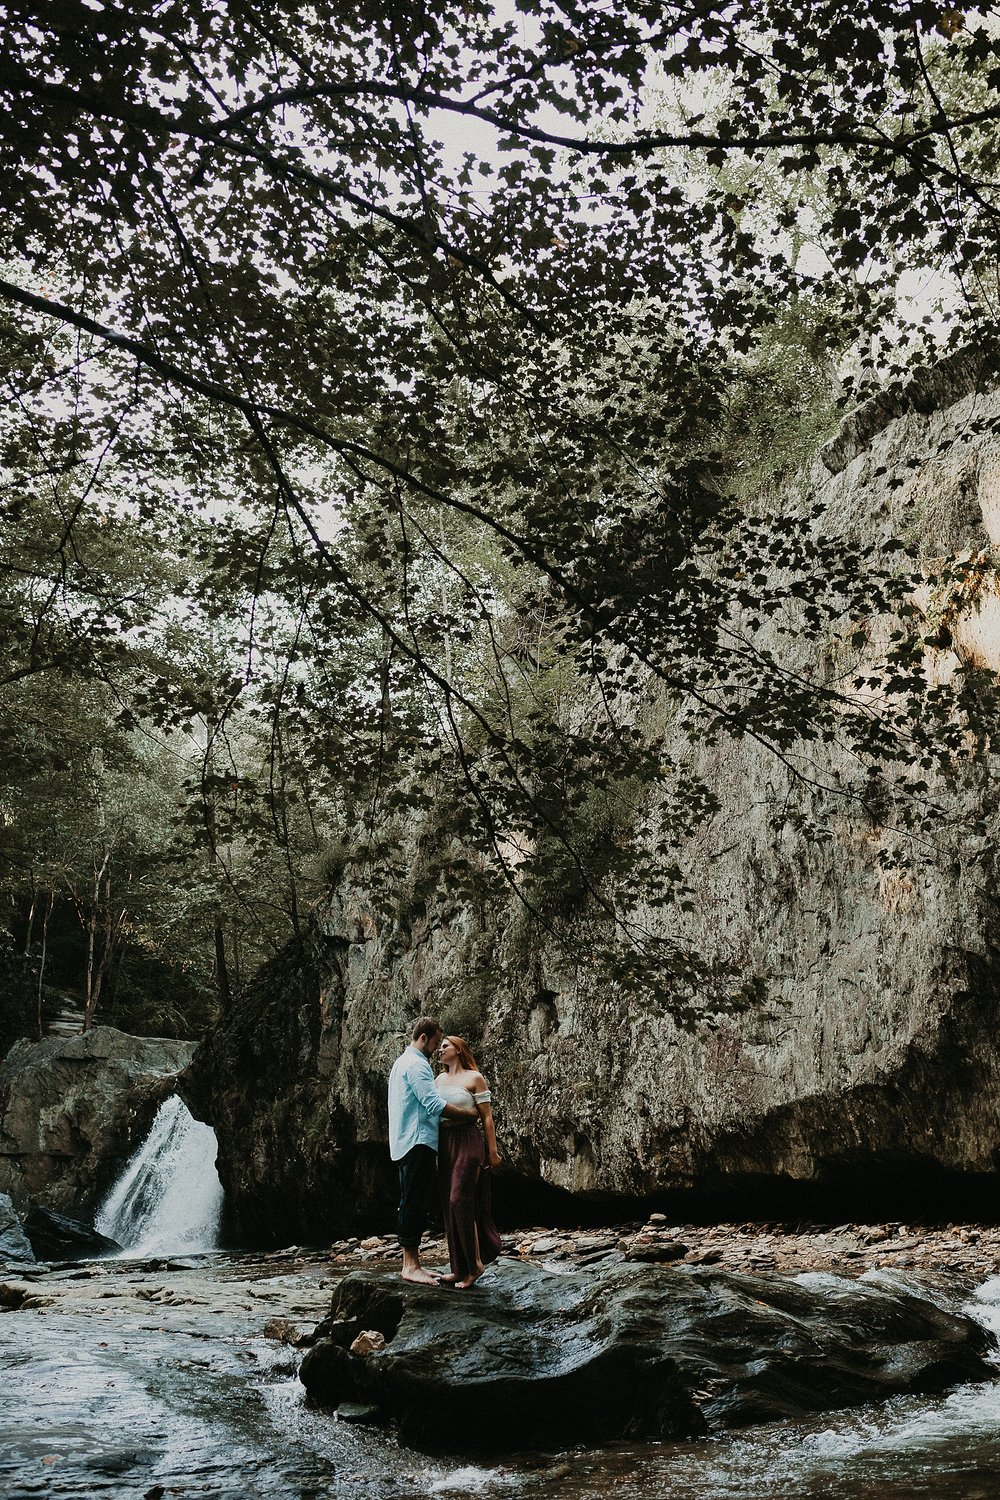 Summer Evening Boho Couples Session at Kilgore Falls Waterfalls in Pylesville Maryland_0019.jpg